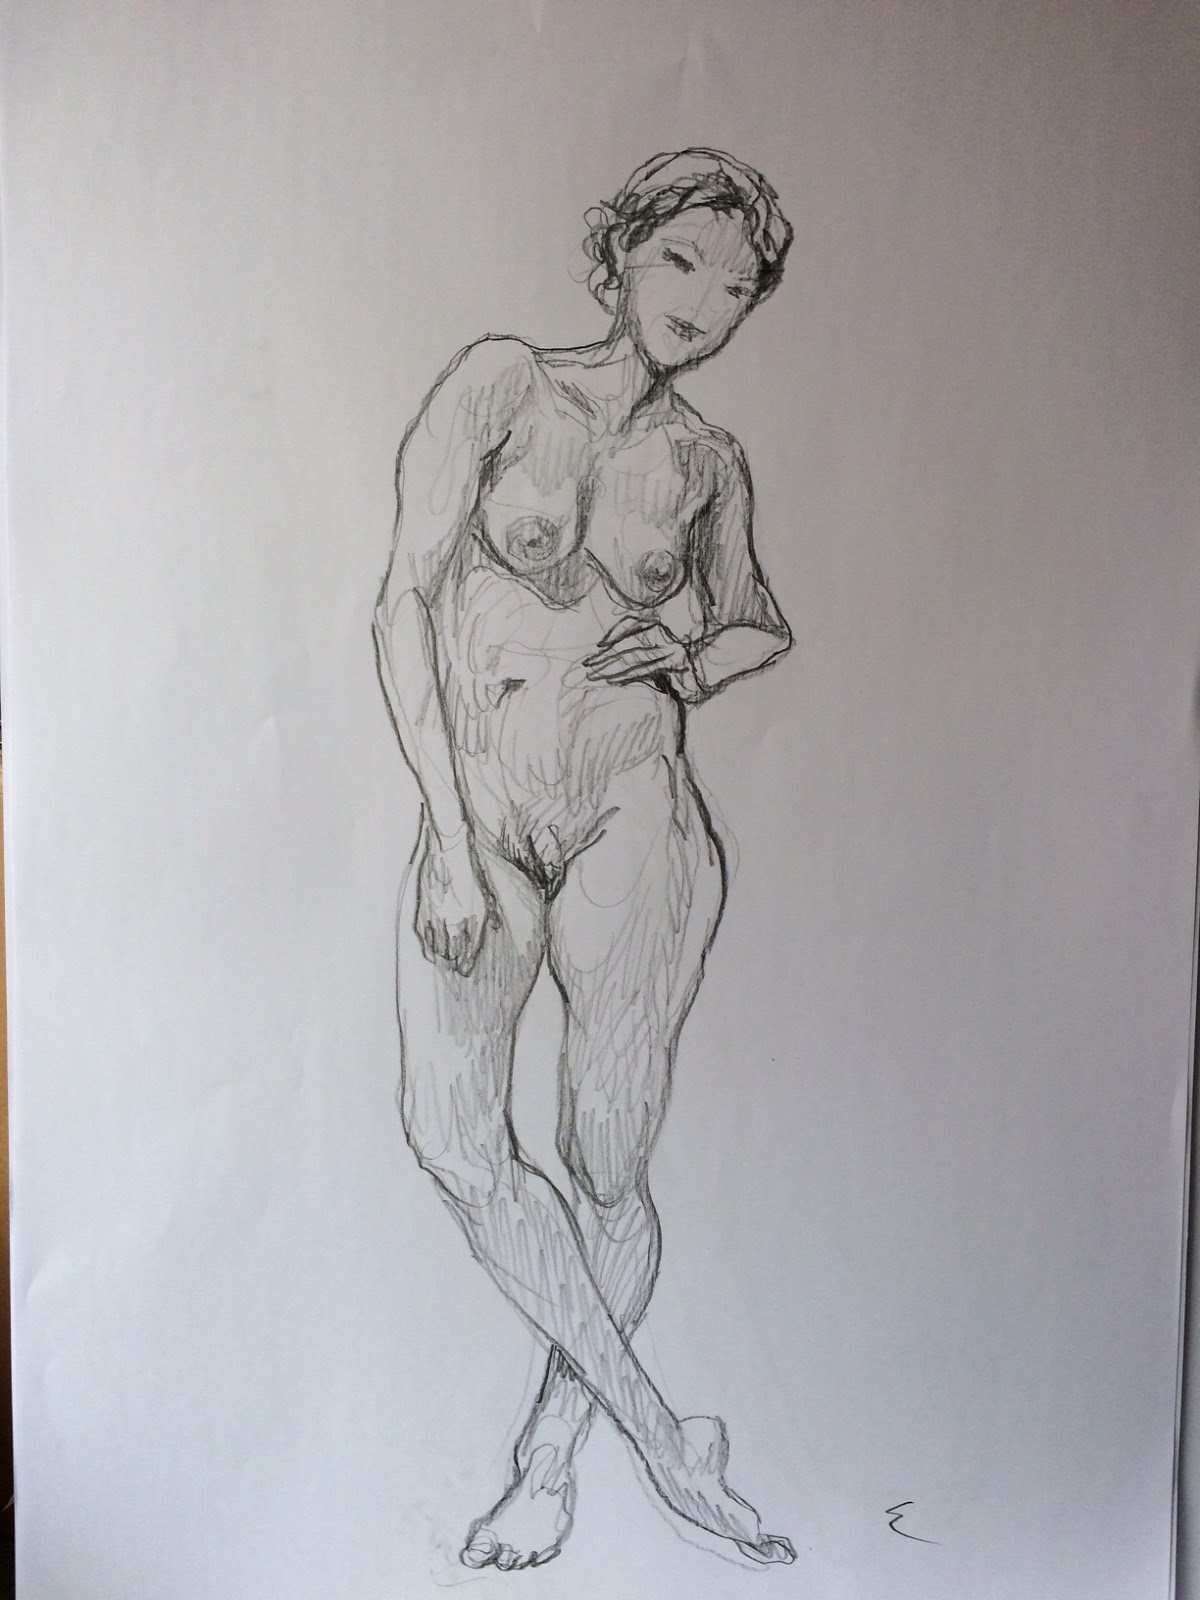 I feel that in drawing the nude model. Had I just drawn what was in front  of me. Trying to copy the models joints, the light the volume of her body.